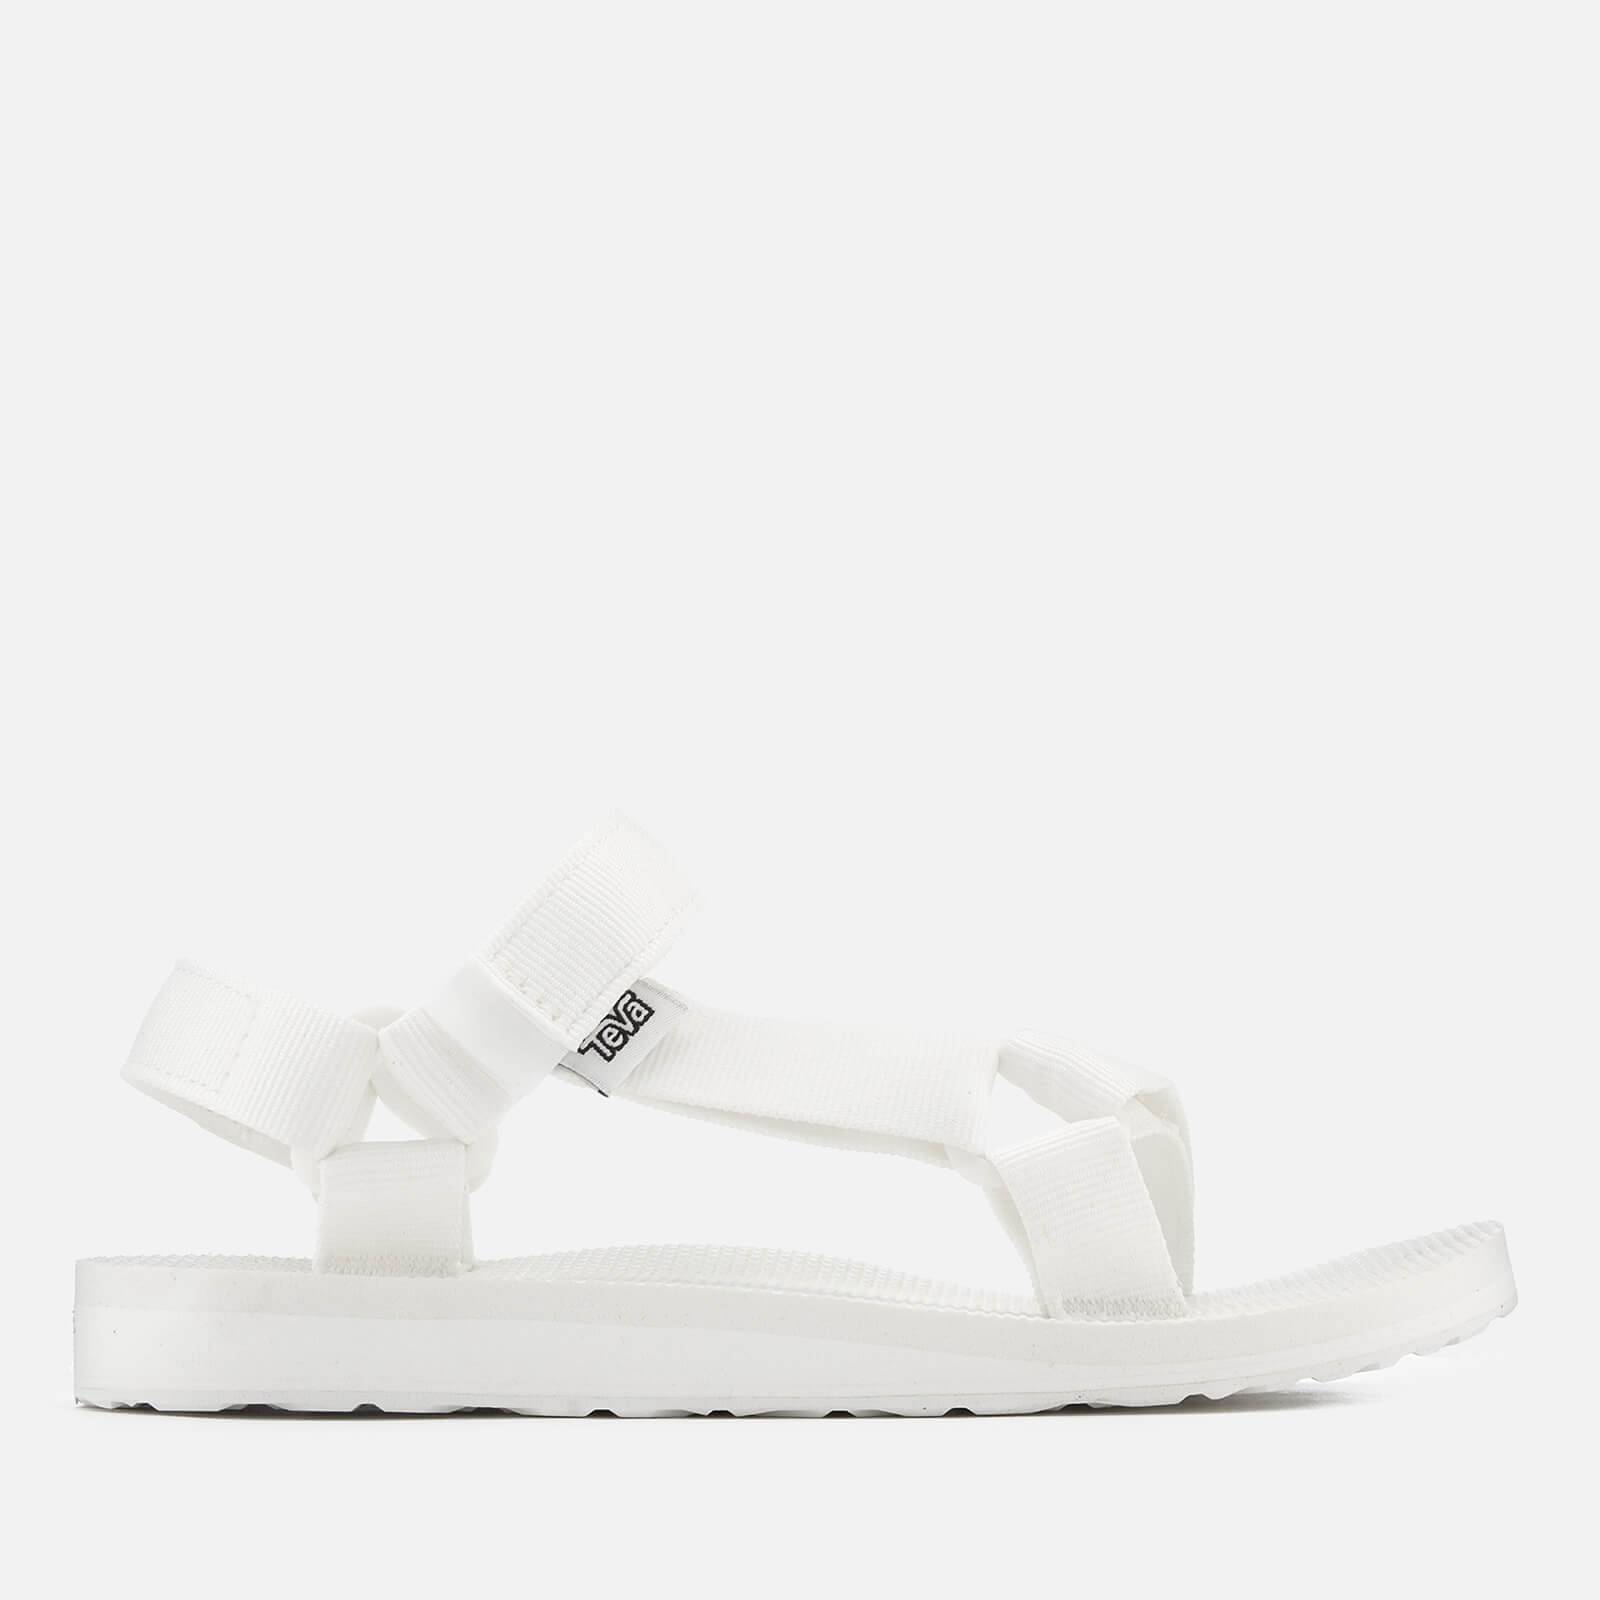 Teva Women's Original Universal Sport Sandals - Bright White - UK 8